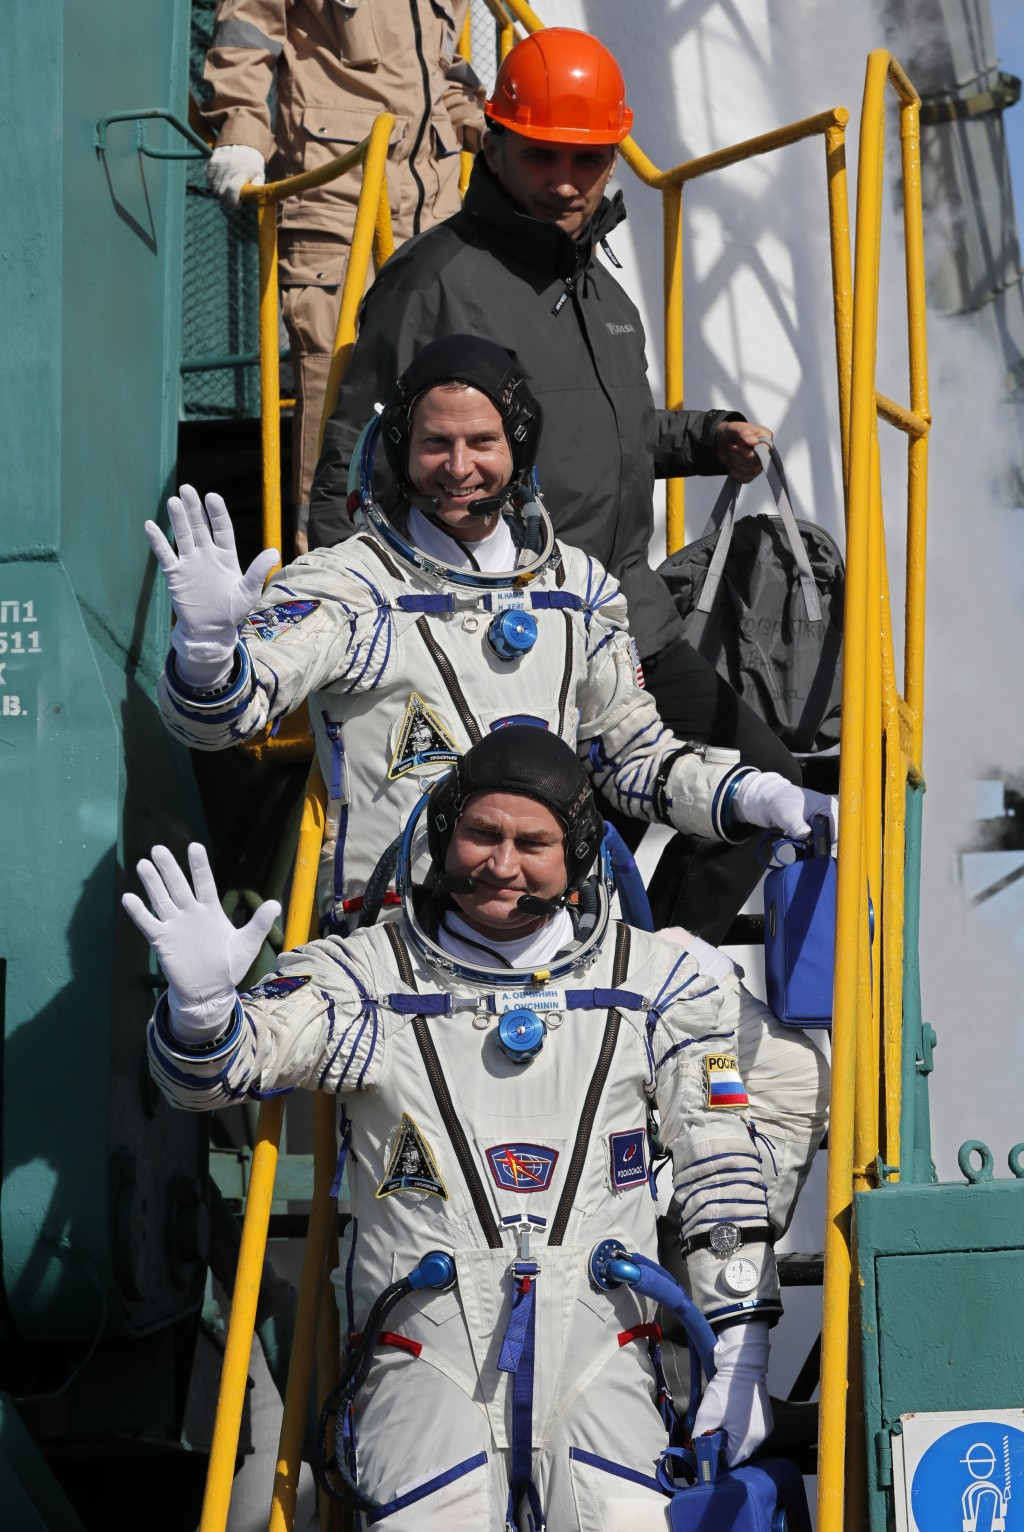 U.S. astronaut Nick Hague, right, and Russian cosmonaut Alexey Ovchinin, crew members of the mission to the International Space Station, ISS, wave as